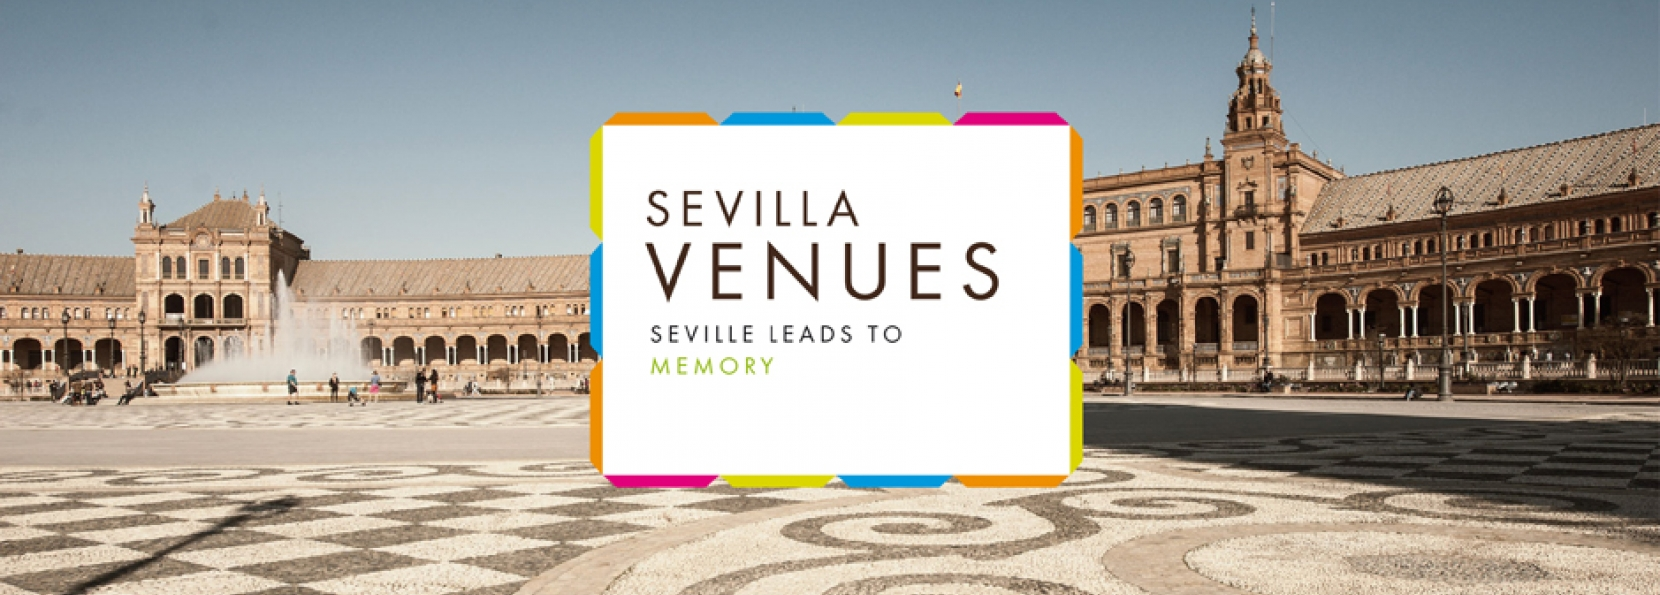 Seville leads to memory